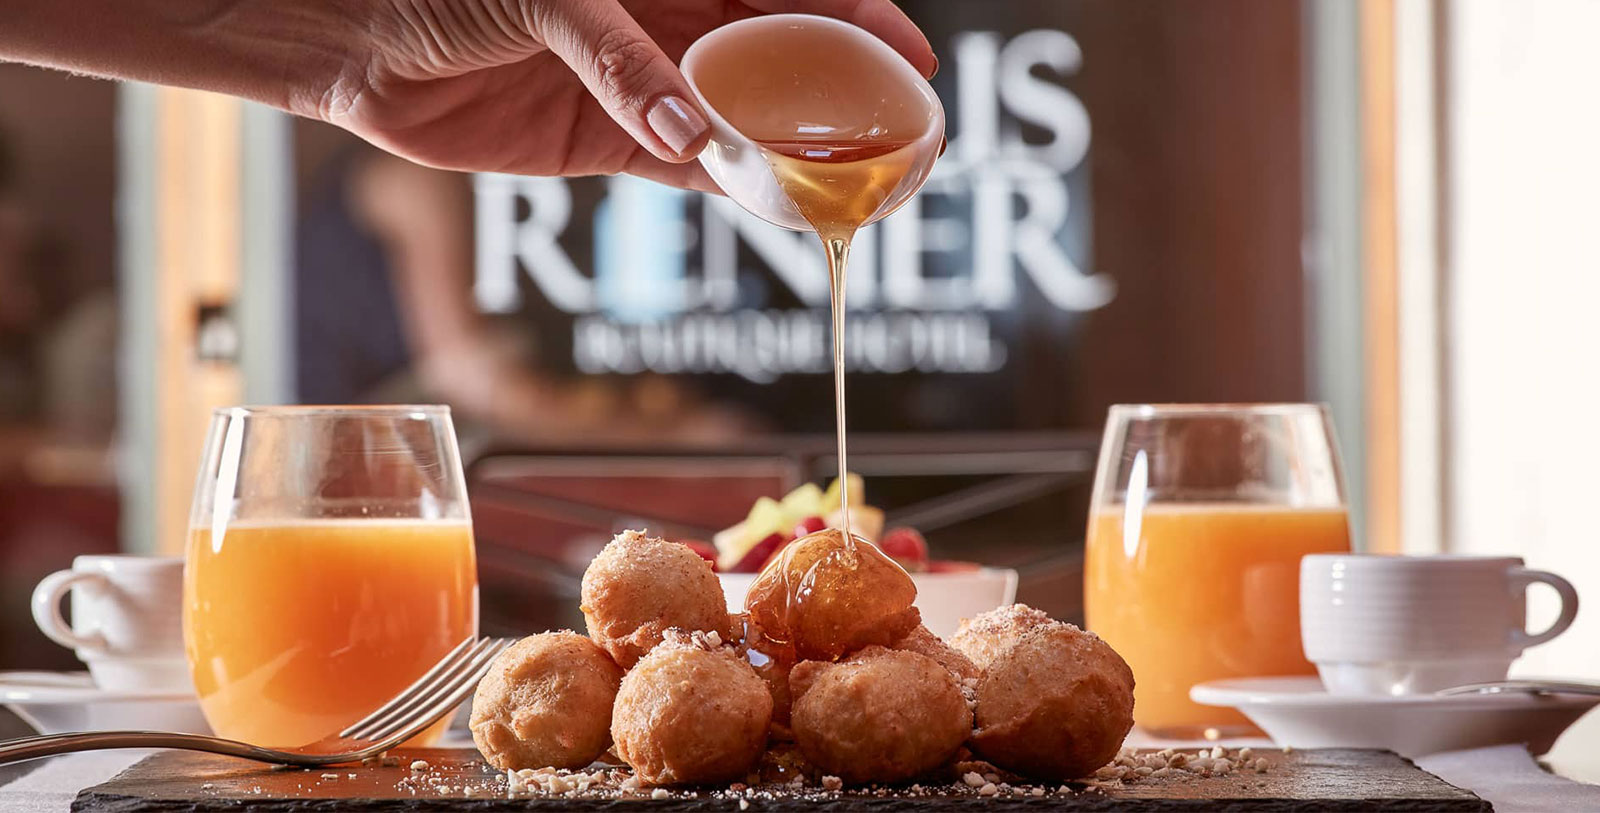 Image of loukoumades at Domus Renier Boutique Hotel, 1608, Member of Historic Hotels Worldwide, in Chania, Greece, Taste